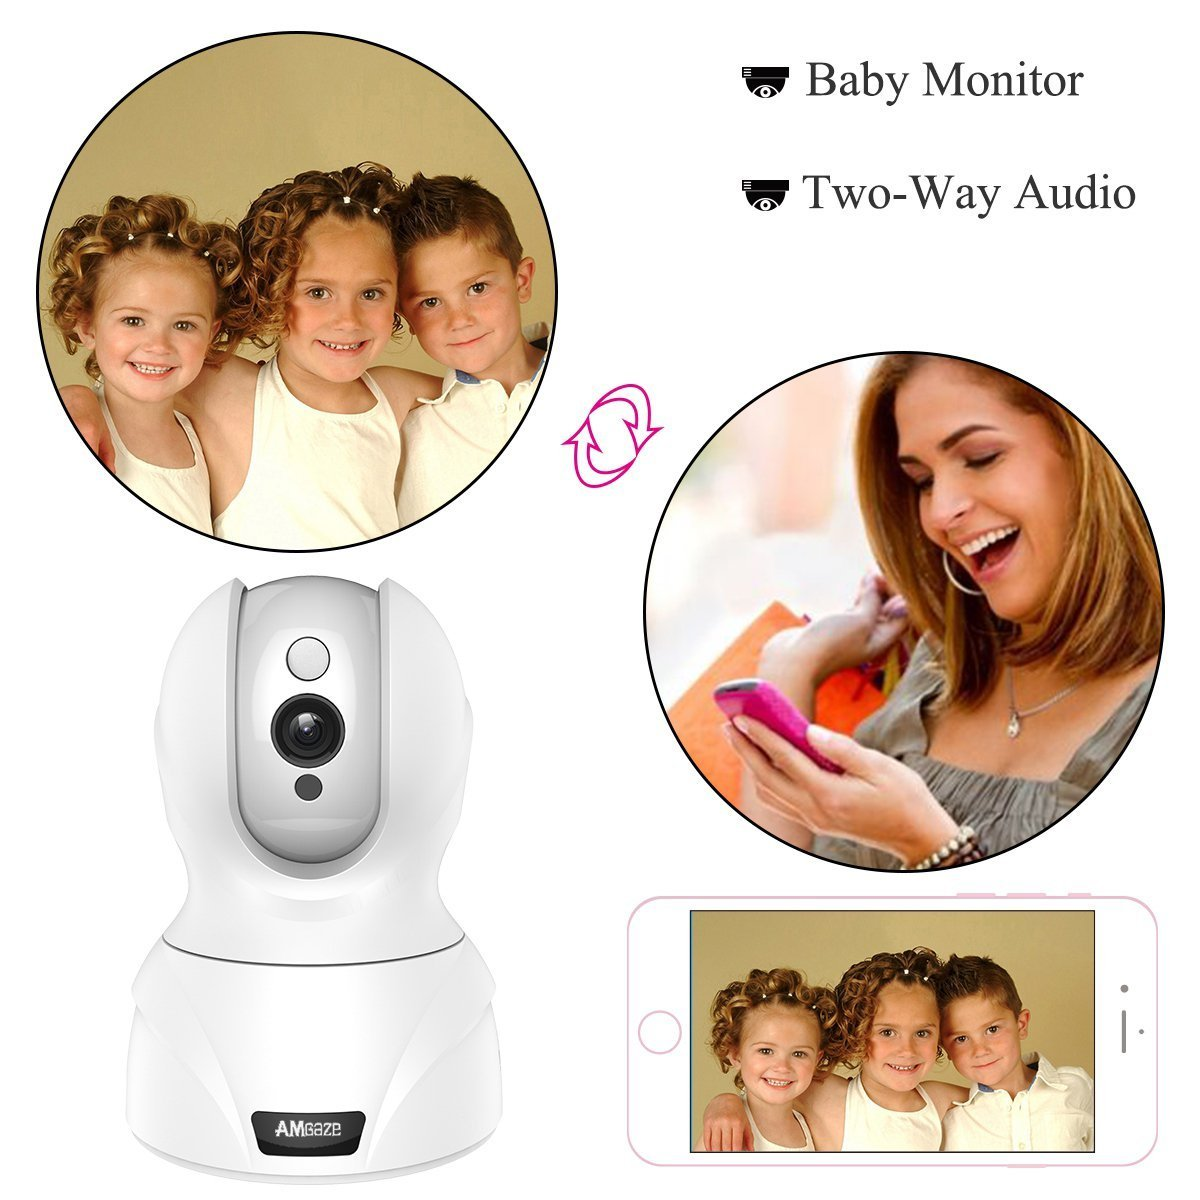 720P Wlan IP Camera, Wireless Home Security Camera, WiFi Surveillance Security System Video Recording Dome Camera, Monitor for Baby & Pet (720P, White), Topgio